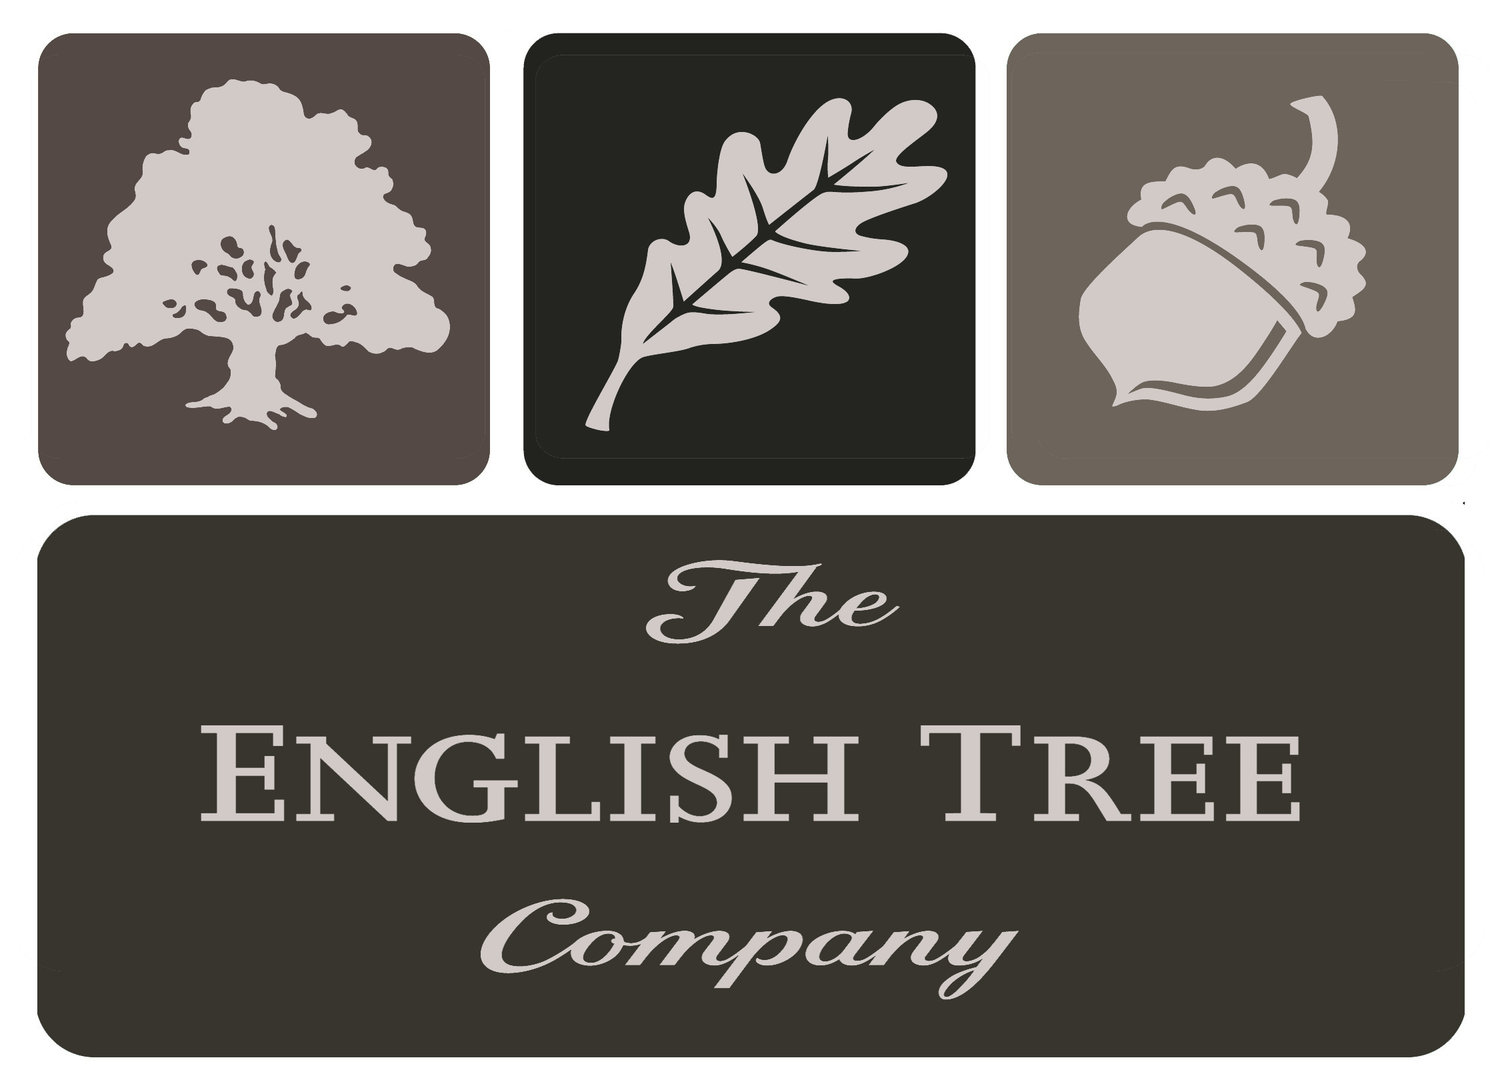 THE ENGLISH TREE COMPANY